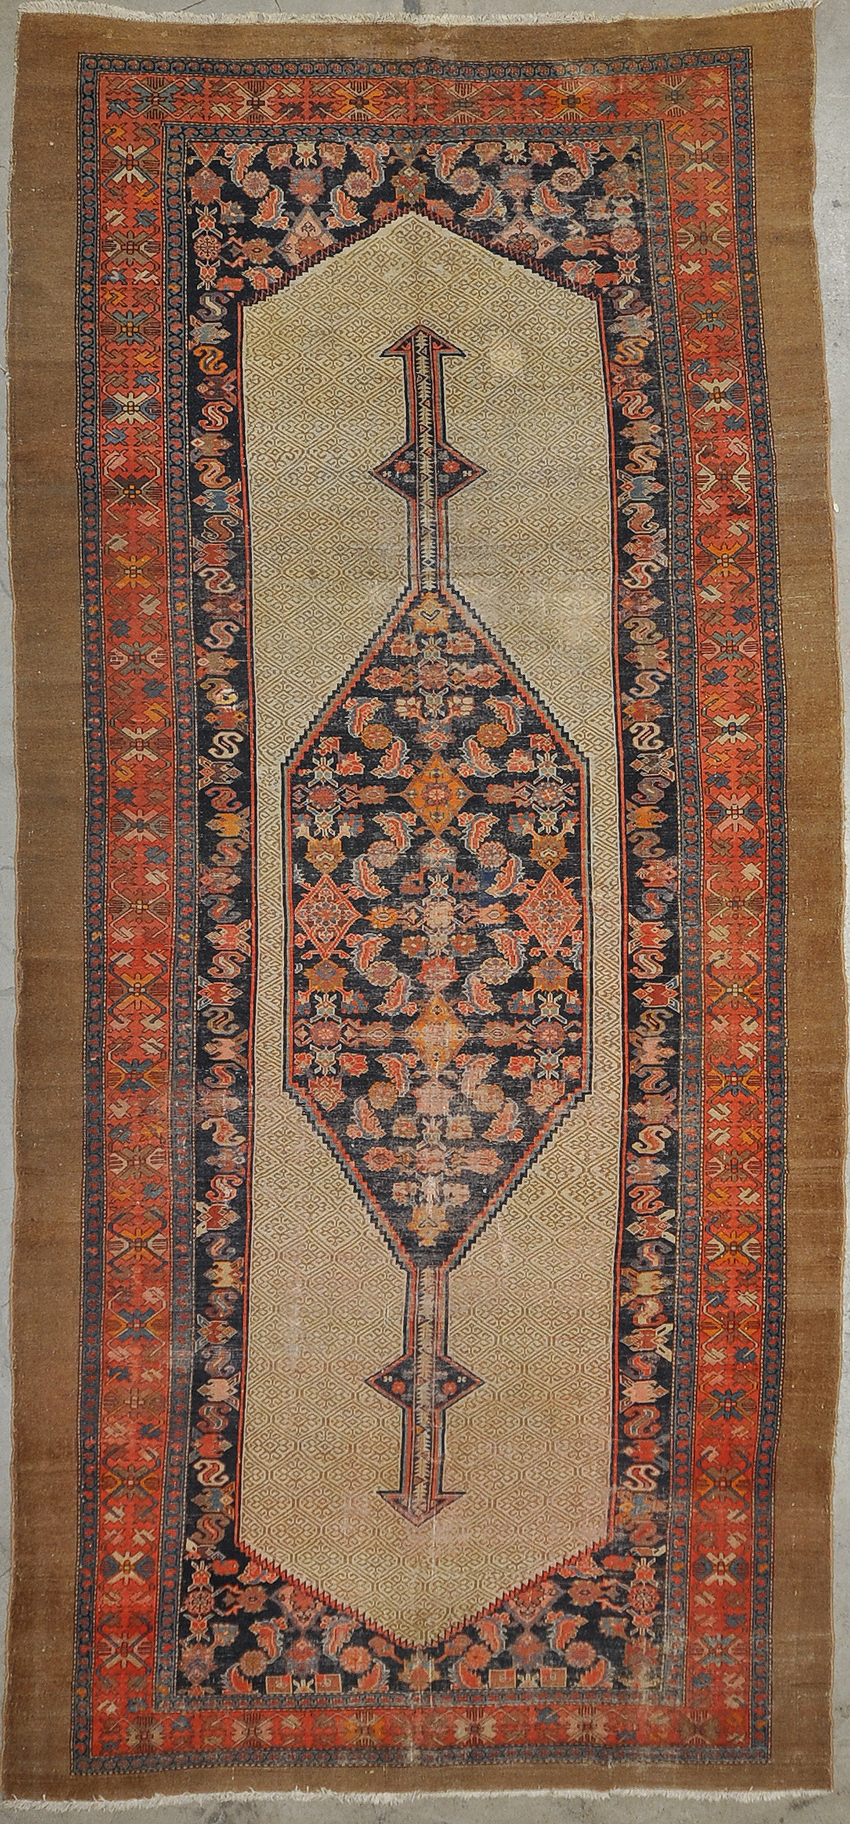 Antique Camel Hair Sarab rugs and more oriental carpet 34132-